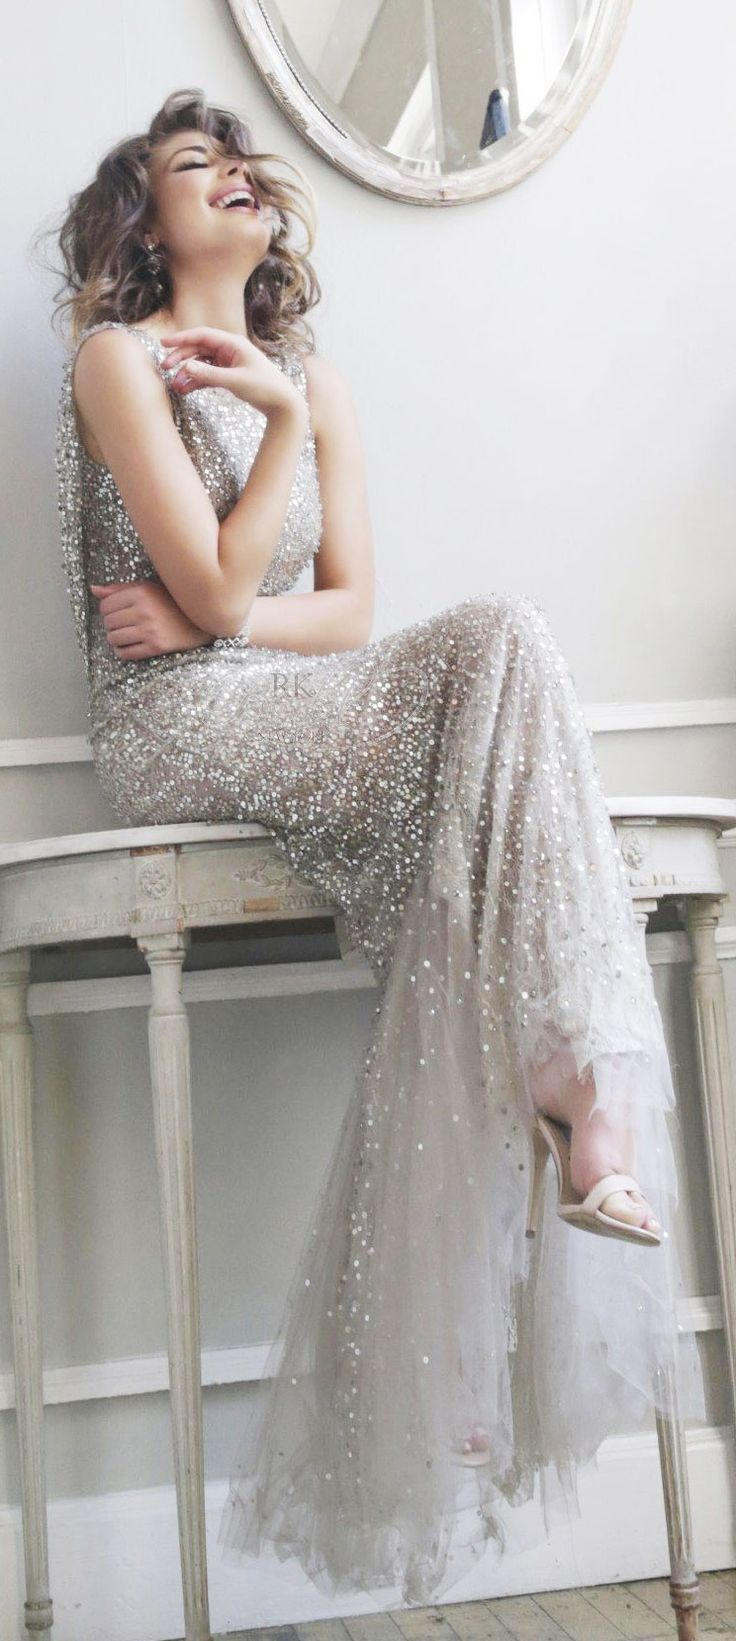 shining silver wedding dress | image via: mod wedding